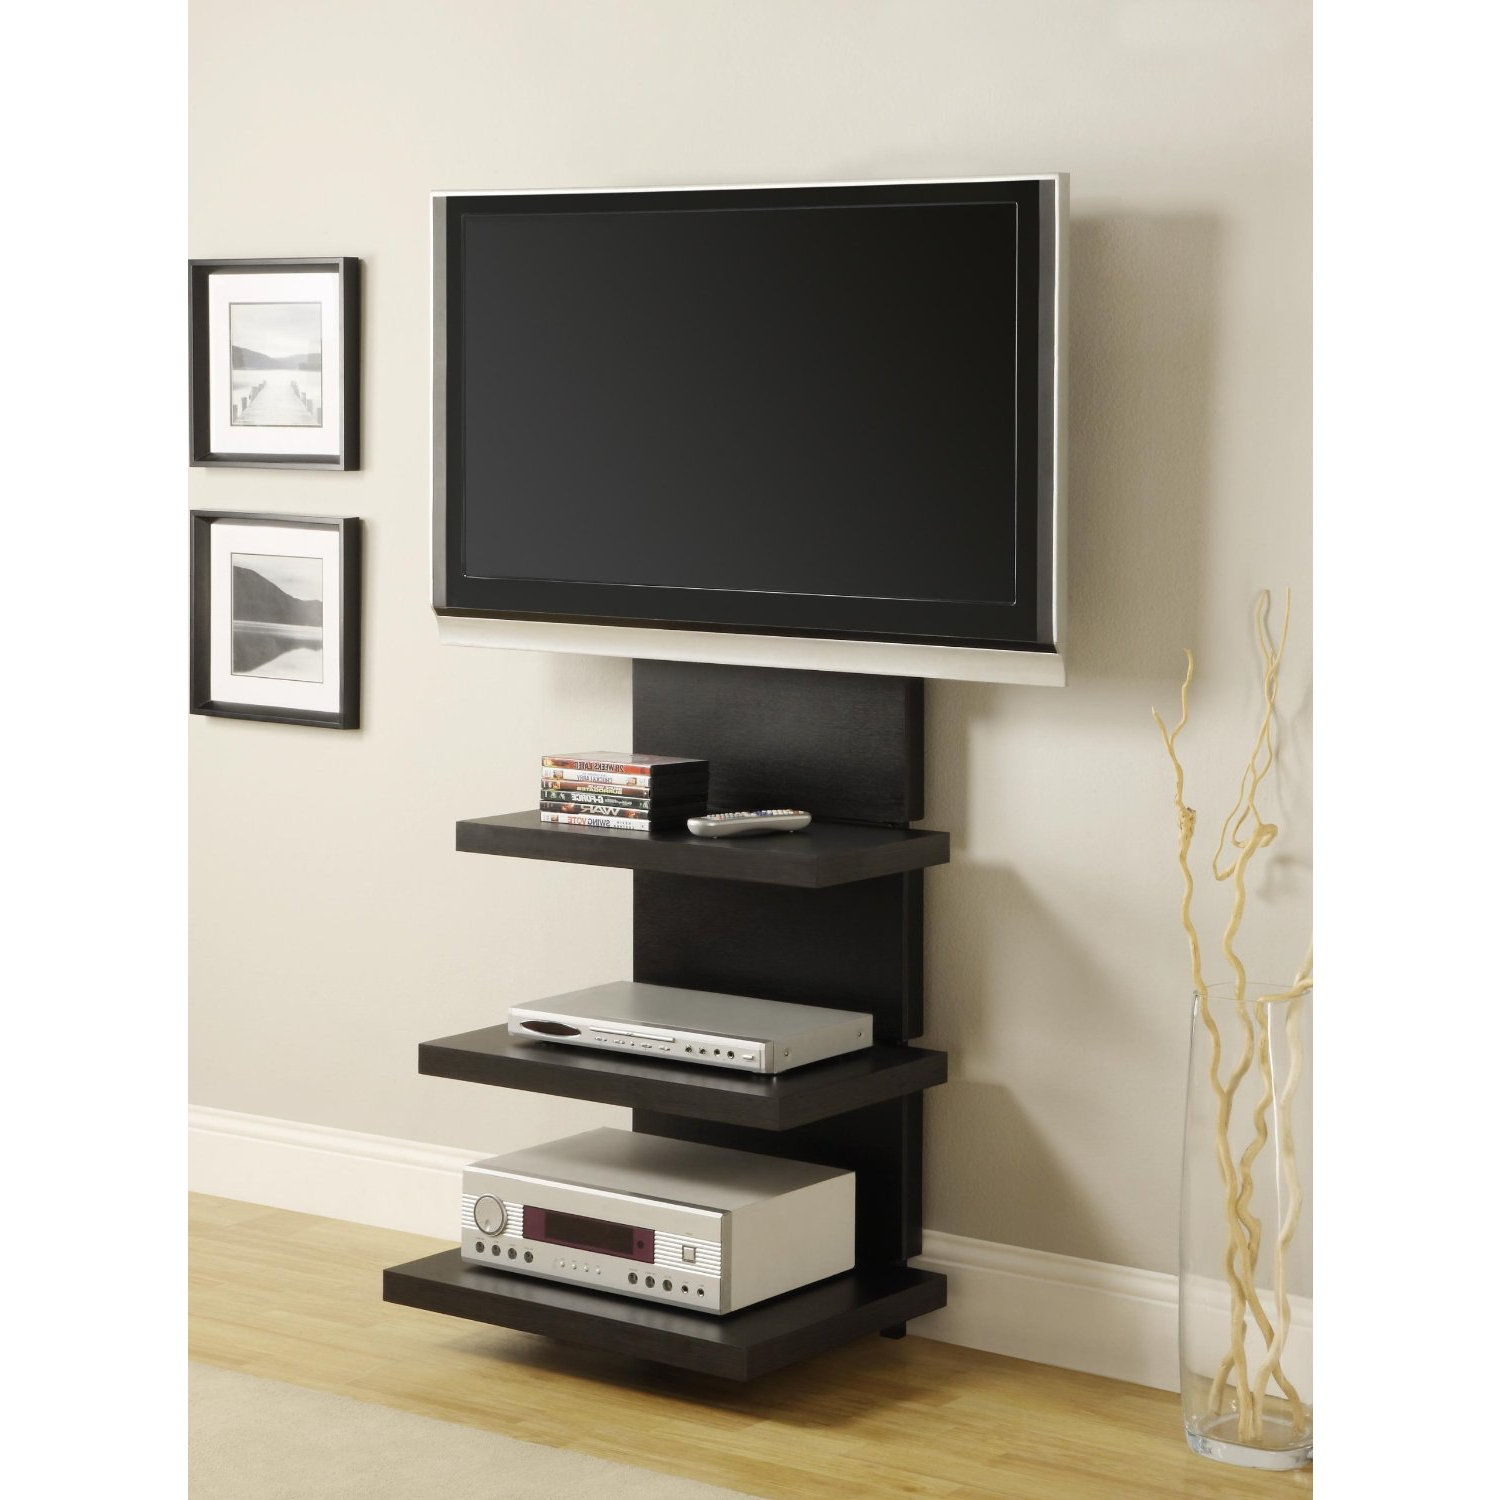 Fashionable Bedroom Low Tv Tables For Flat Screens Television Table Stand Best With Regard To Cheap Tv Table Stands (View 10 of 20)